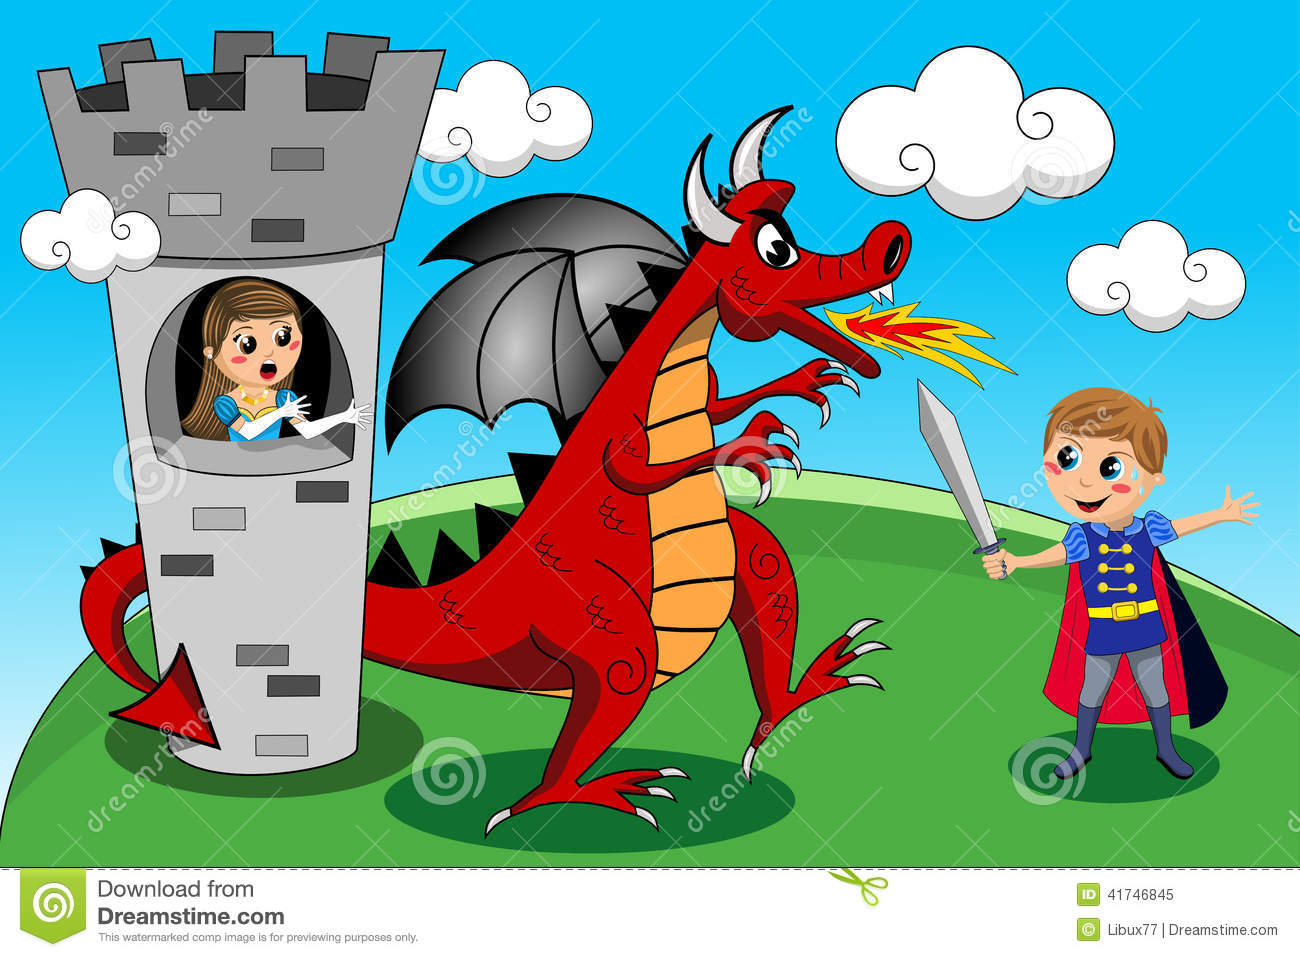 Knight clipart saves princess Kids Photo Princess Clipart Dragon